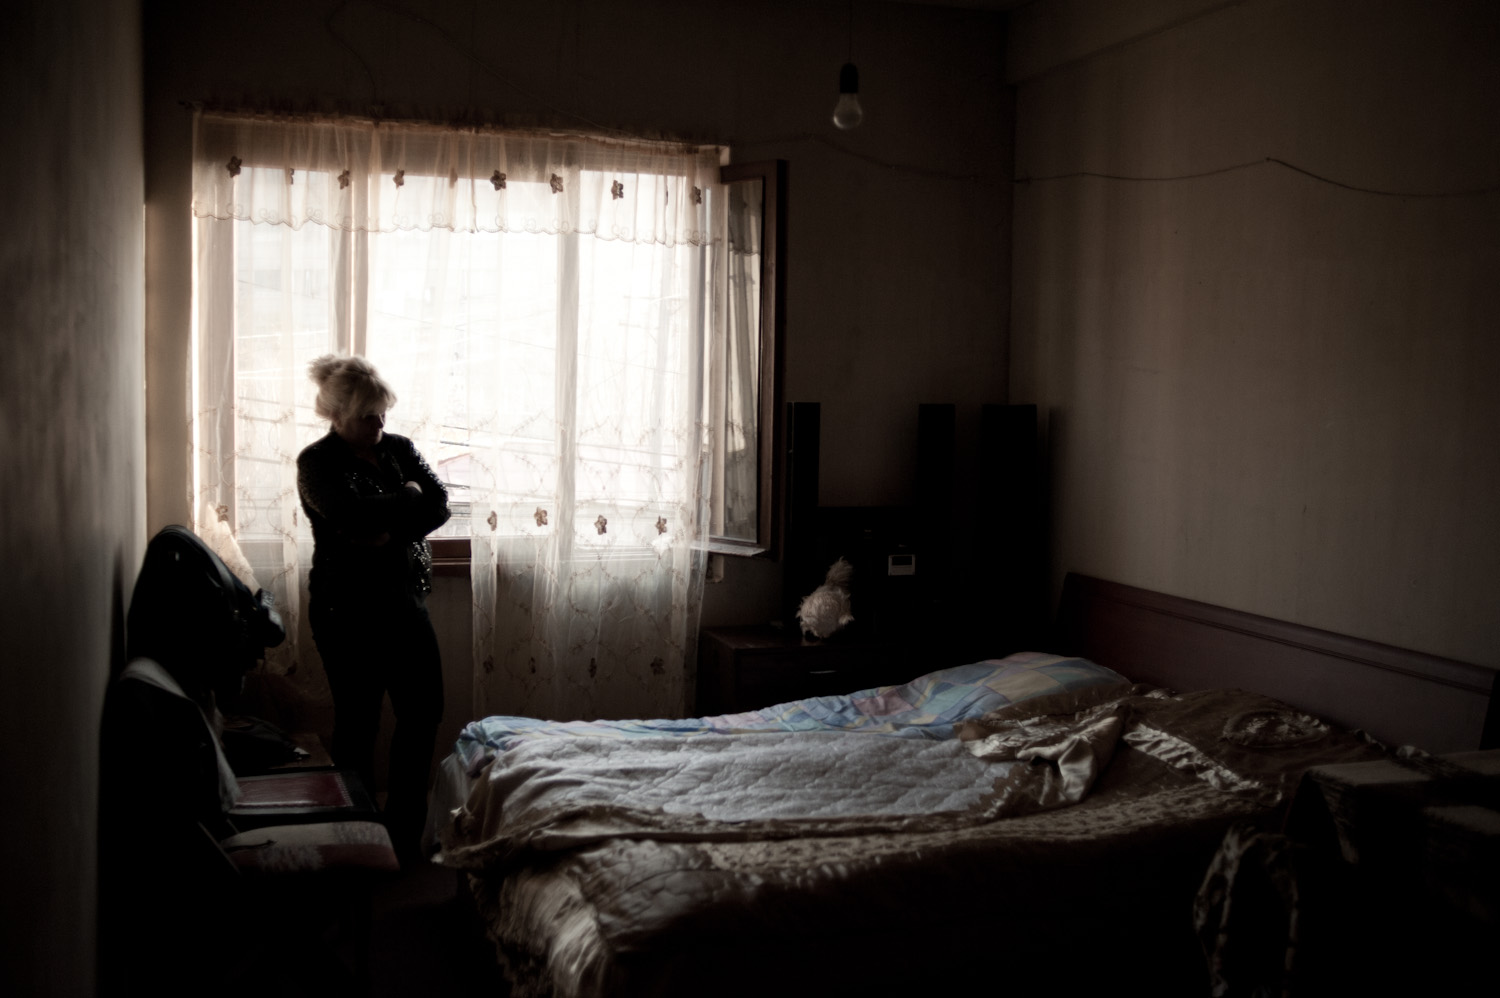 Irina's three sons all slept in the same room together. They have not removed the third bed from the room since his death.